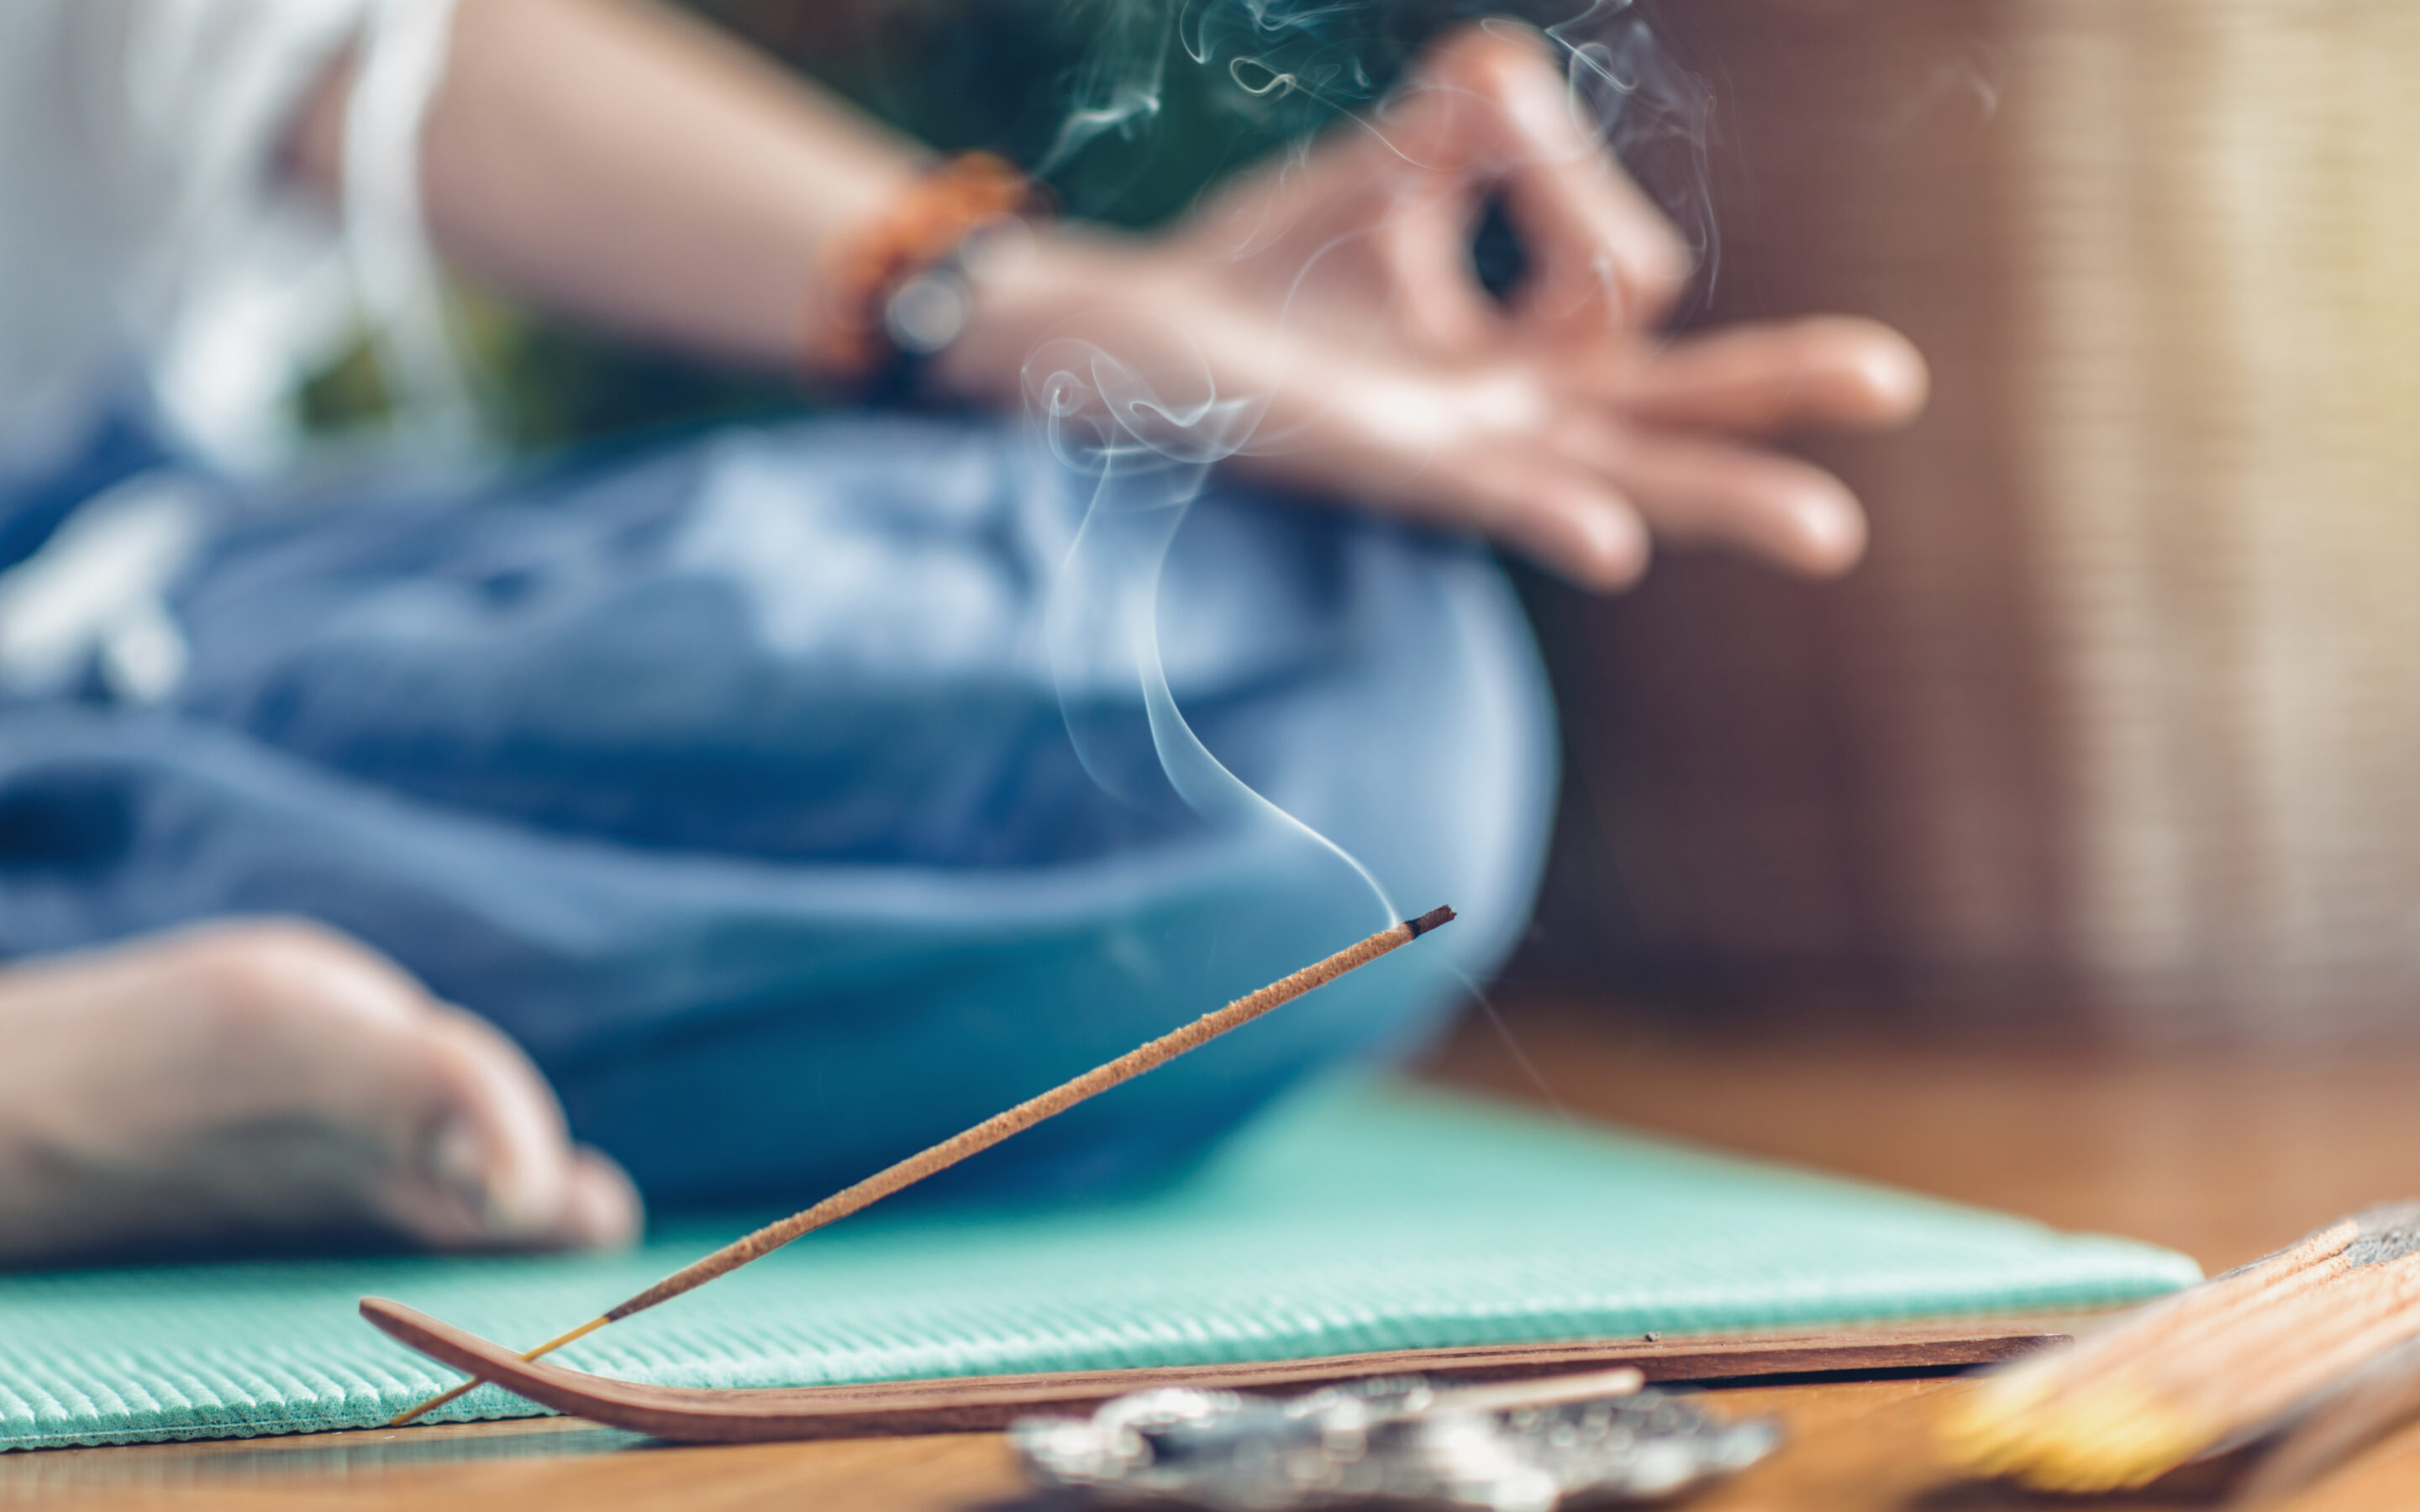 Woman enjoying her ritual of meditation with focus on burning incense stick